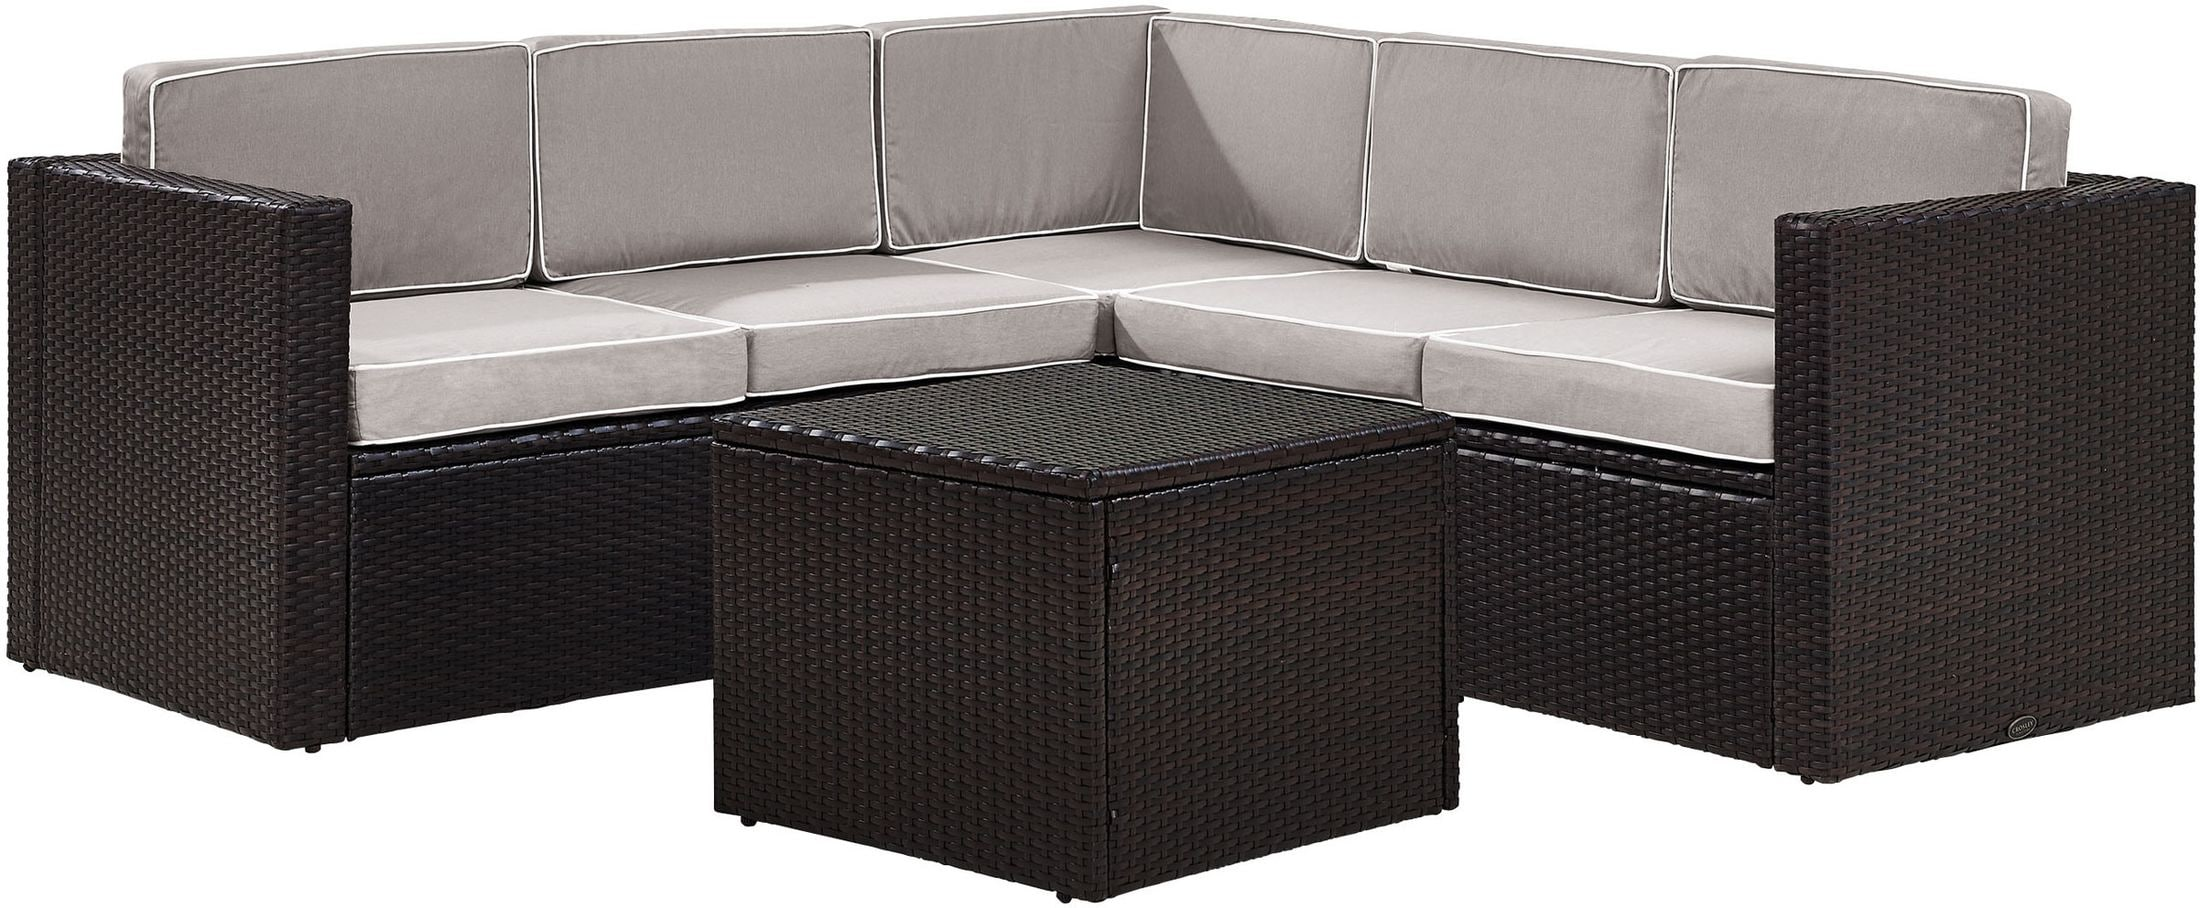 Outdoor Furniture - Aldo 6-Piece Outdoor Sectional and Table Set